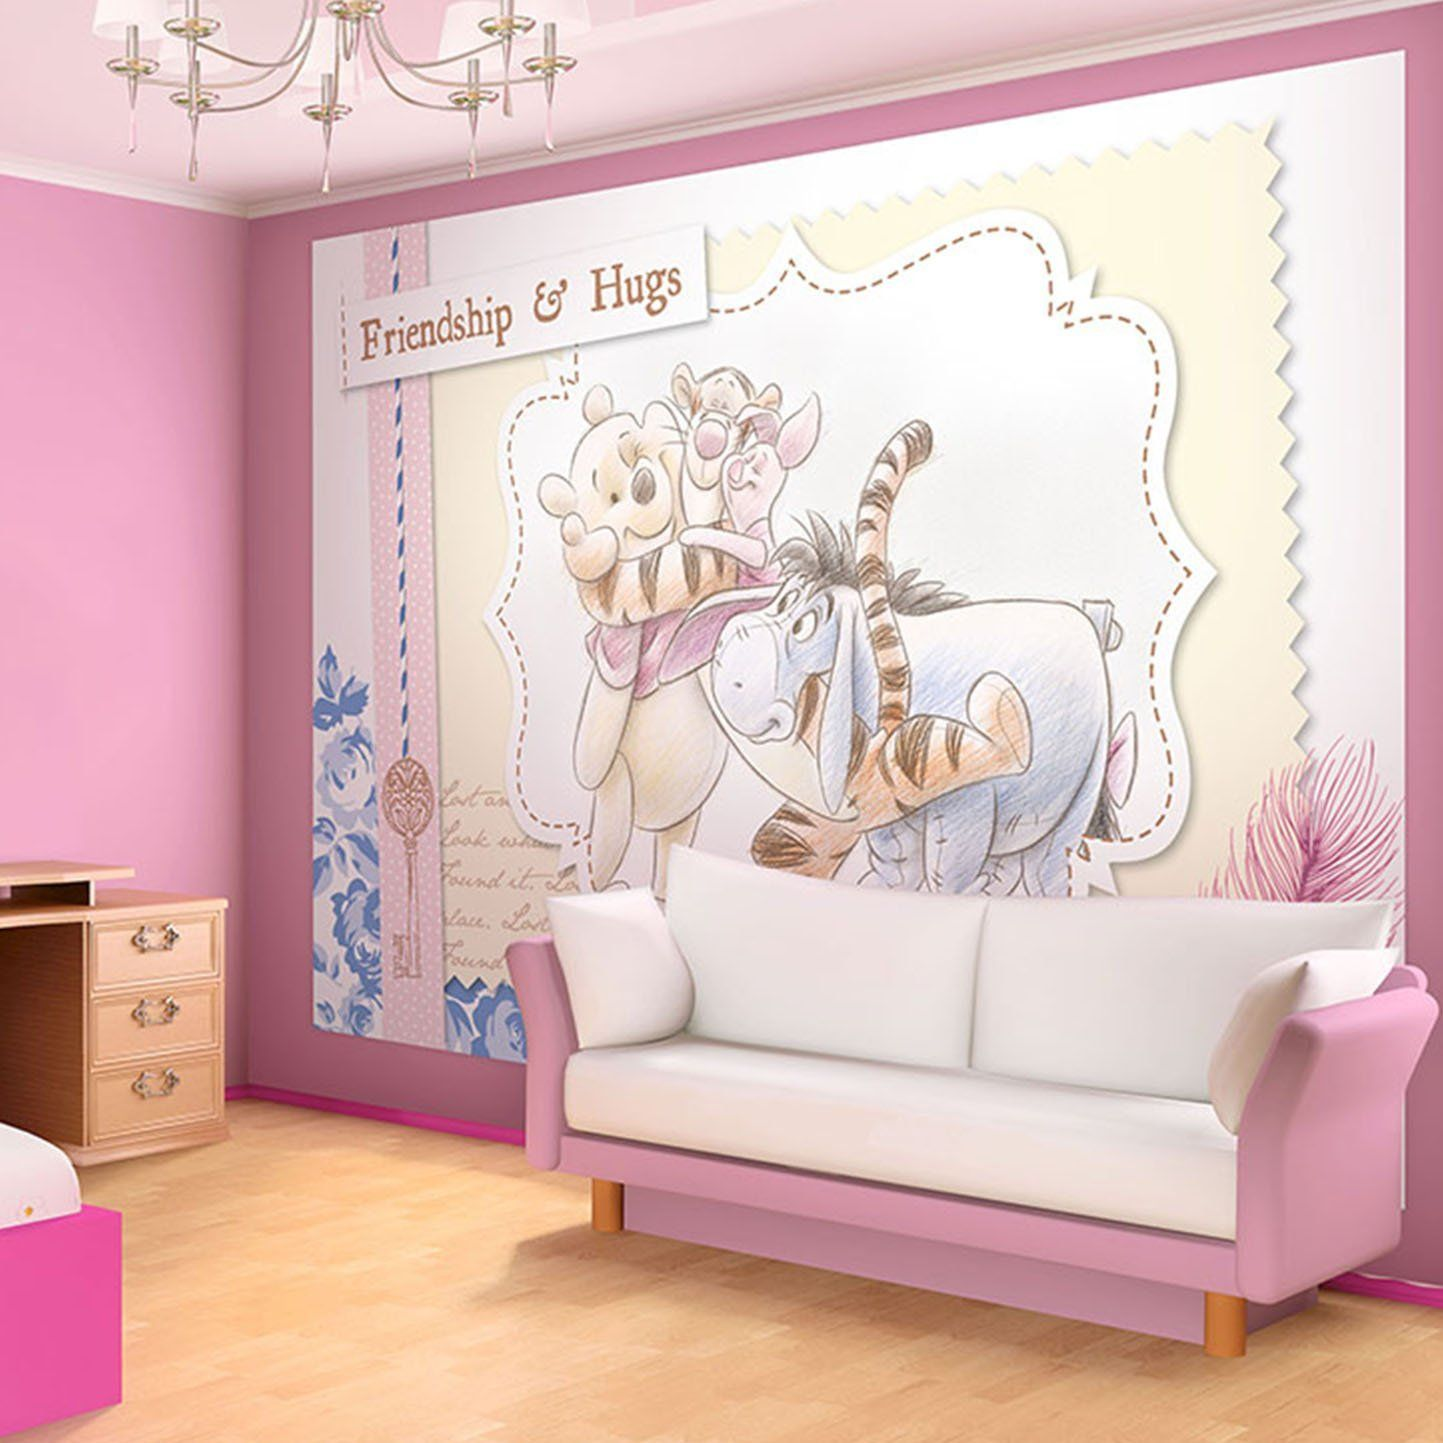 vlies fototapeten fototapete wandbild tapeten disney winnie pooh kinderzimmer winnie pooh. Black Bedroom Furniture Sets. Home Design Ideas